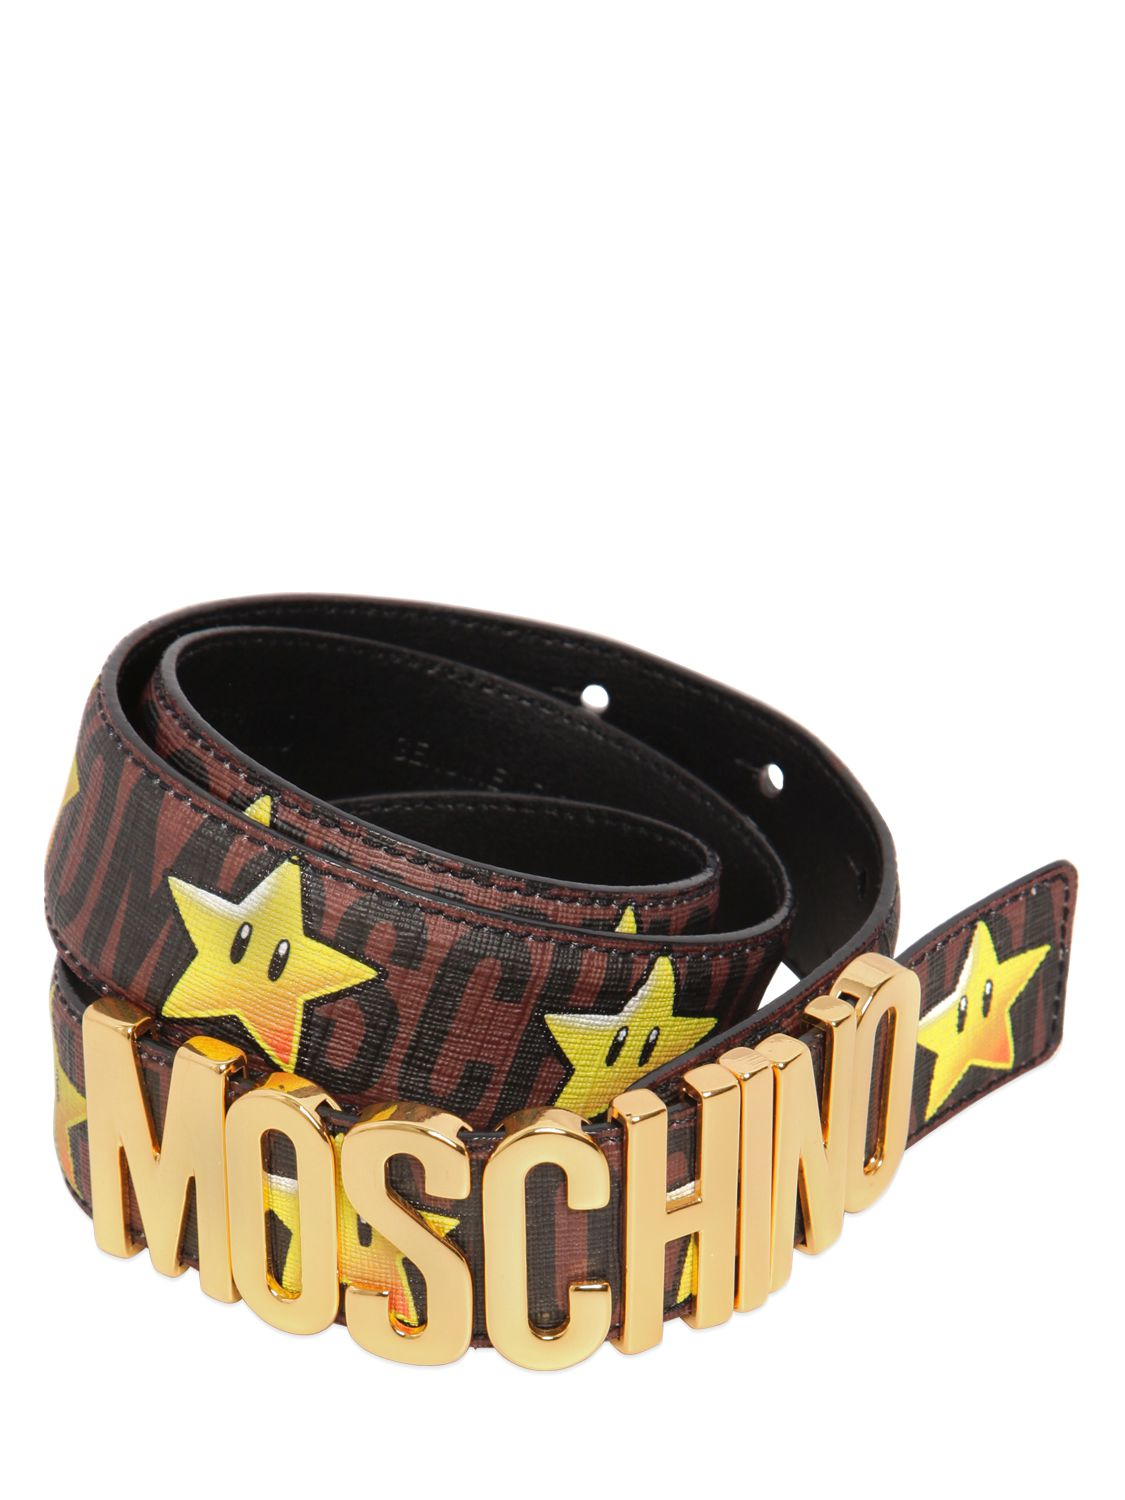 234e0db11c Moschino 35mm Super Faux Leather Belt in Yellow for Men - Lyst